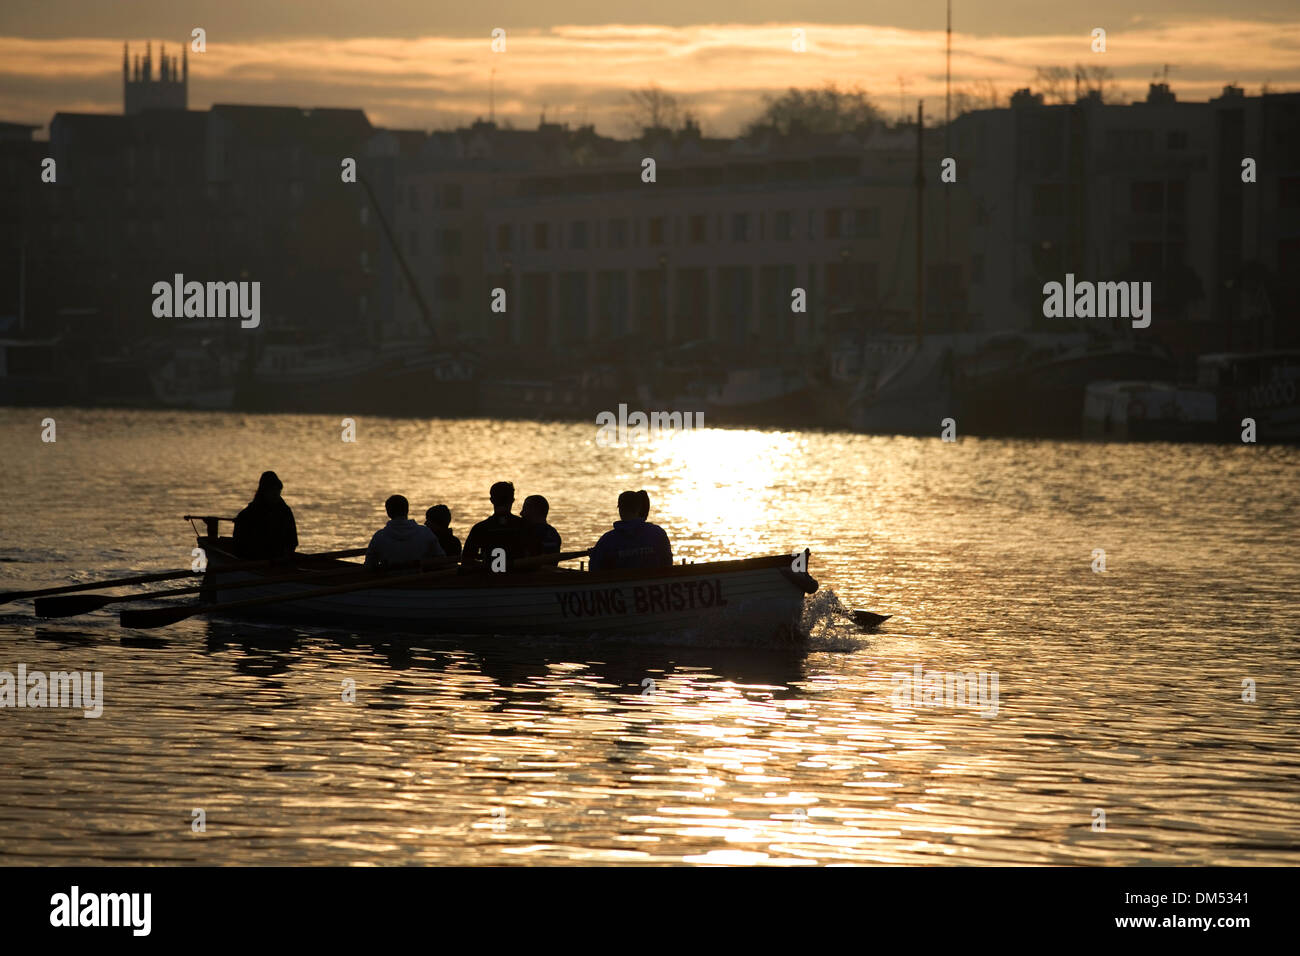 Early morning rowers on the river. - Stock Image